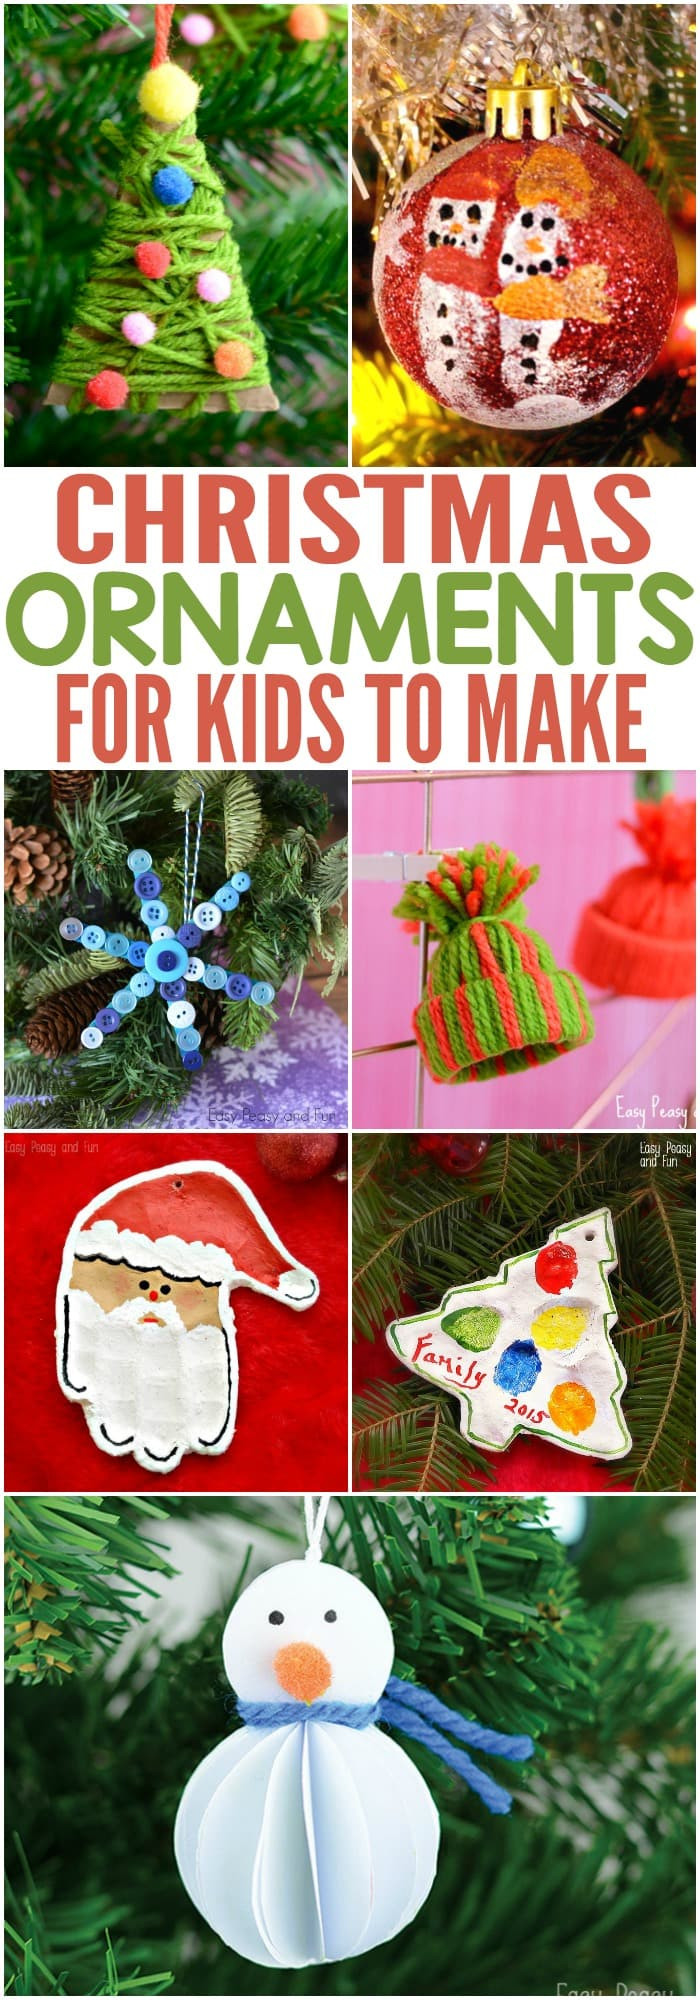 Best ideas about DIY Christmas Ornaments For Toddlers . Save or Pin Jolly DIY Christmas Ornaments Ideas Homemade Memories Now.